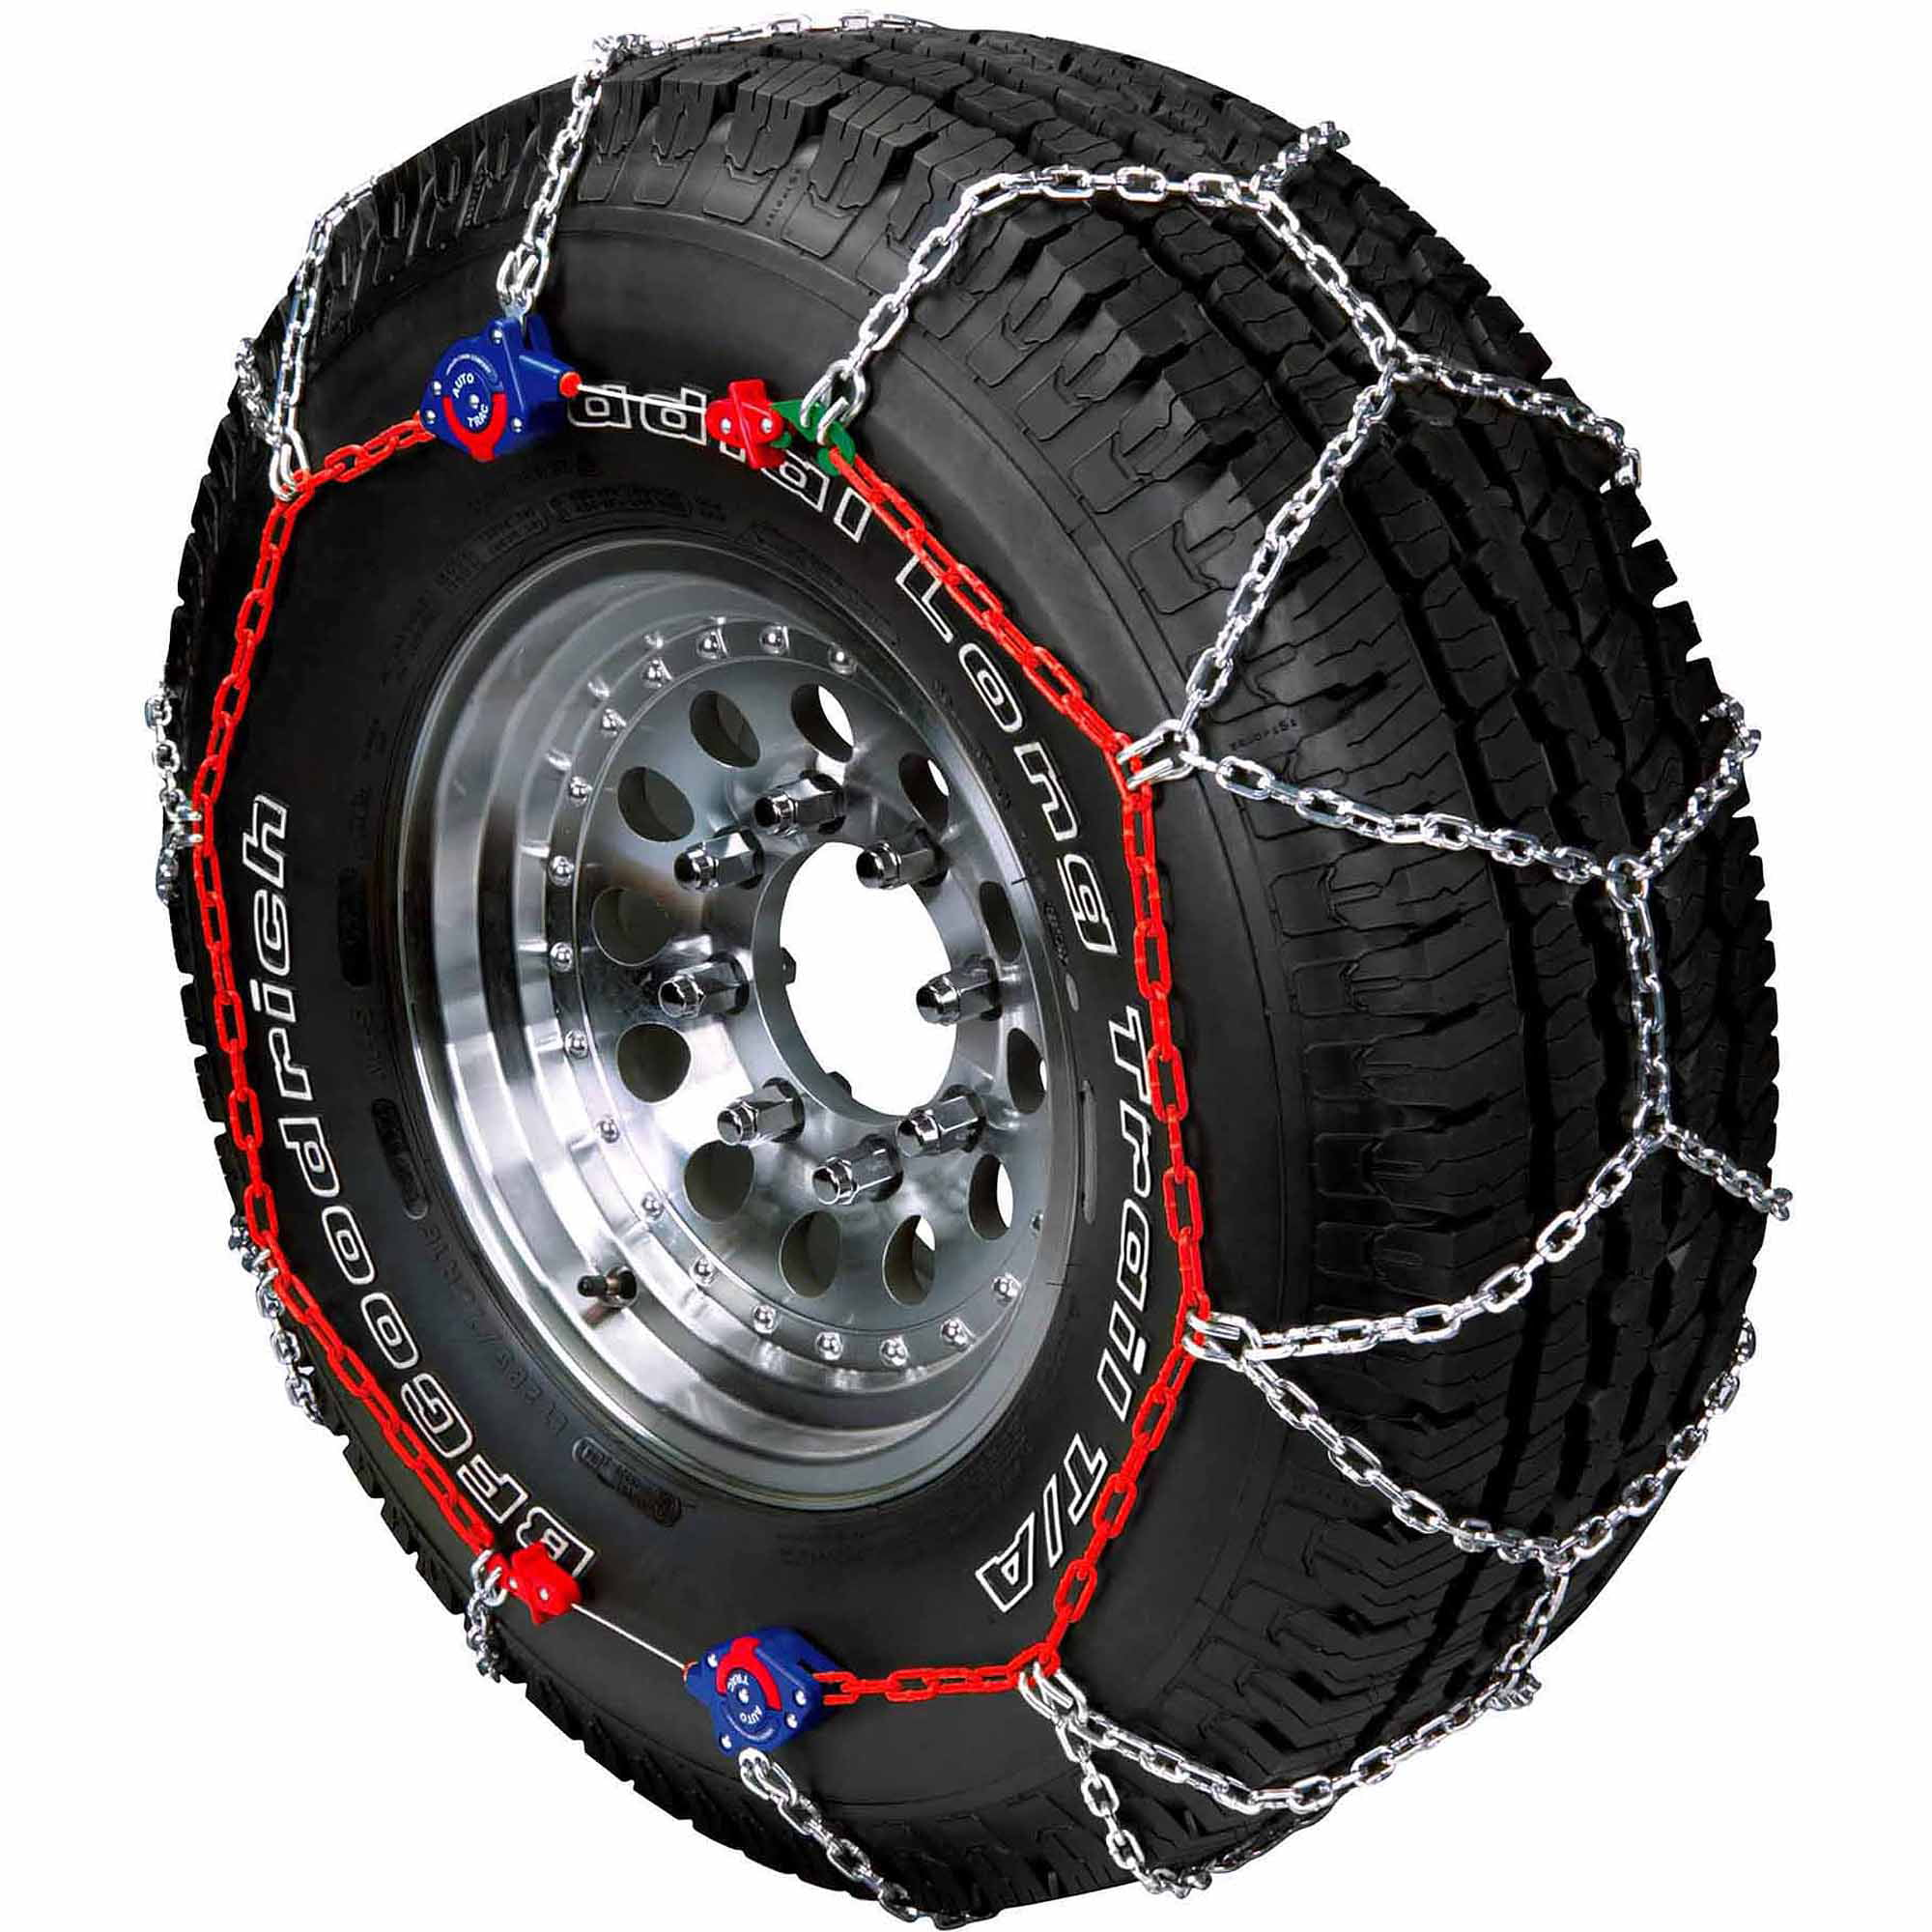 loading light camlocks bar index truck tire v zoom chains with